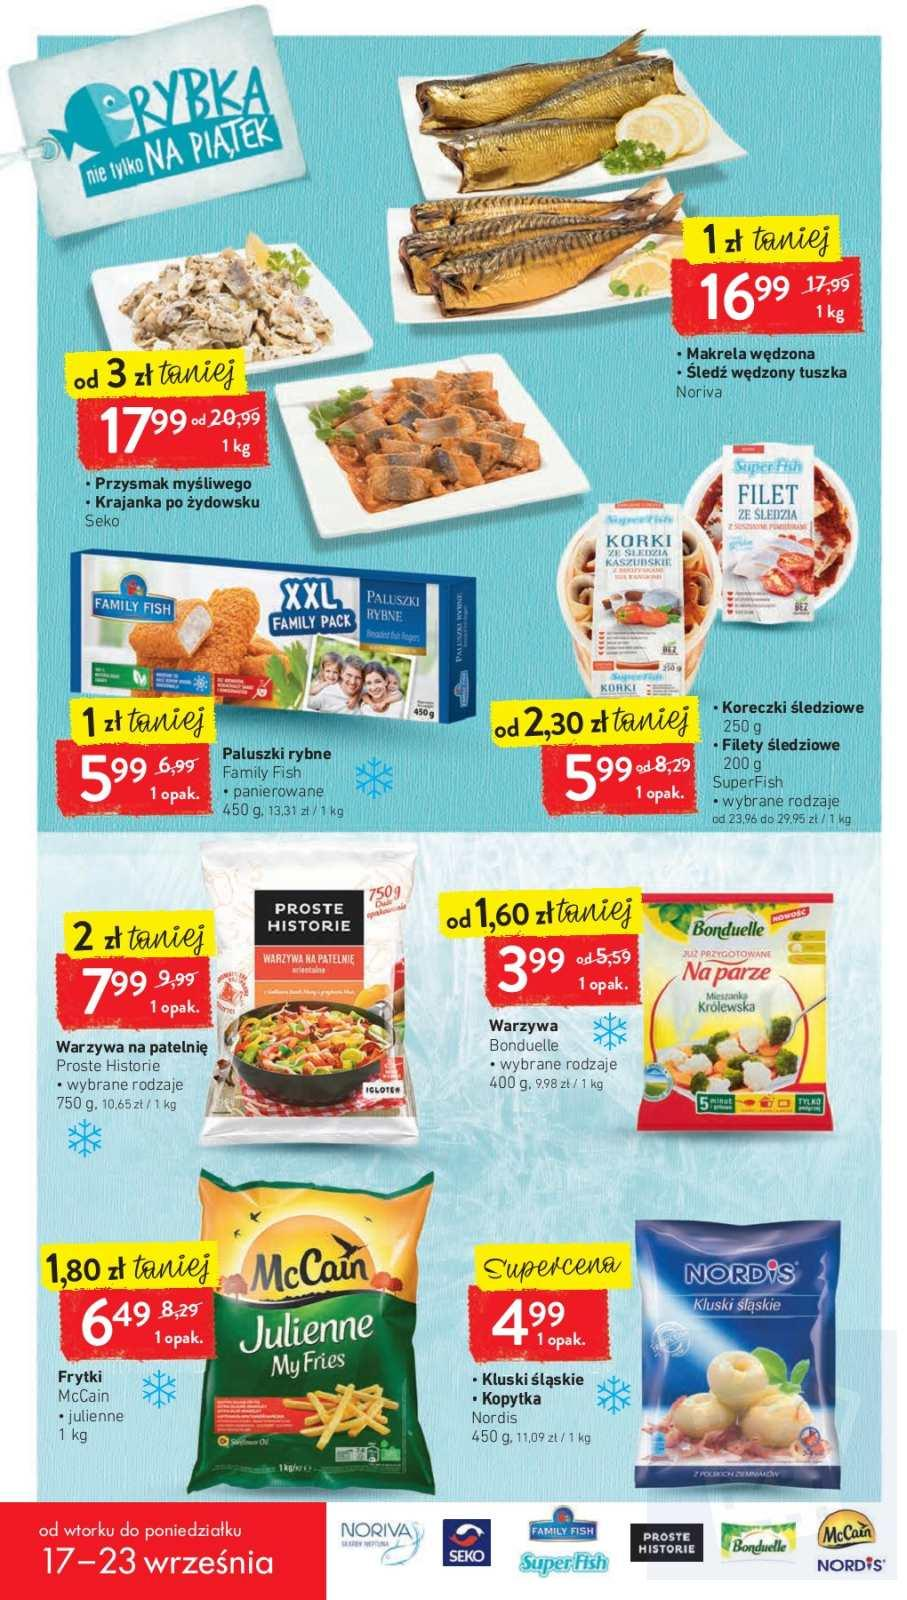 Gazetka promocyjna Intermarche do 23/09/2019 str.7